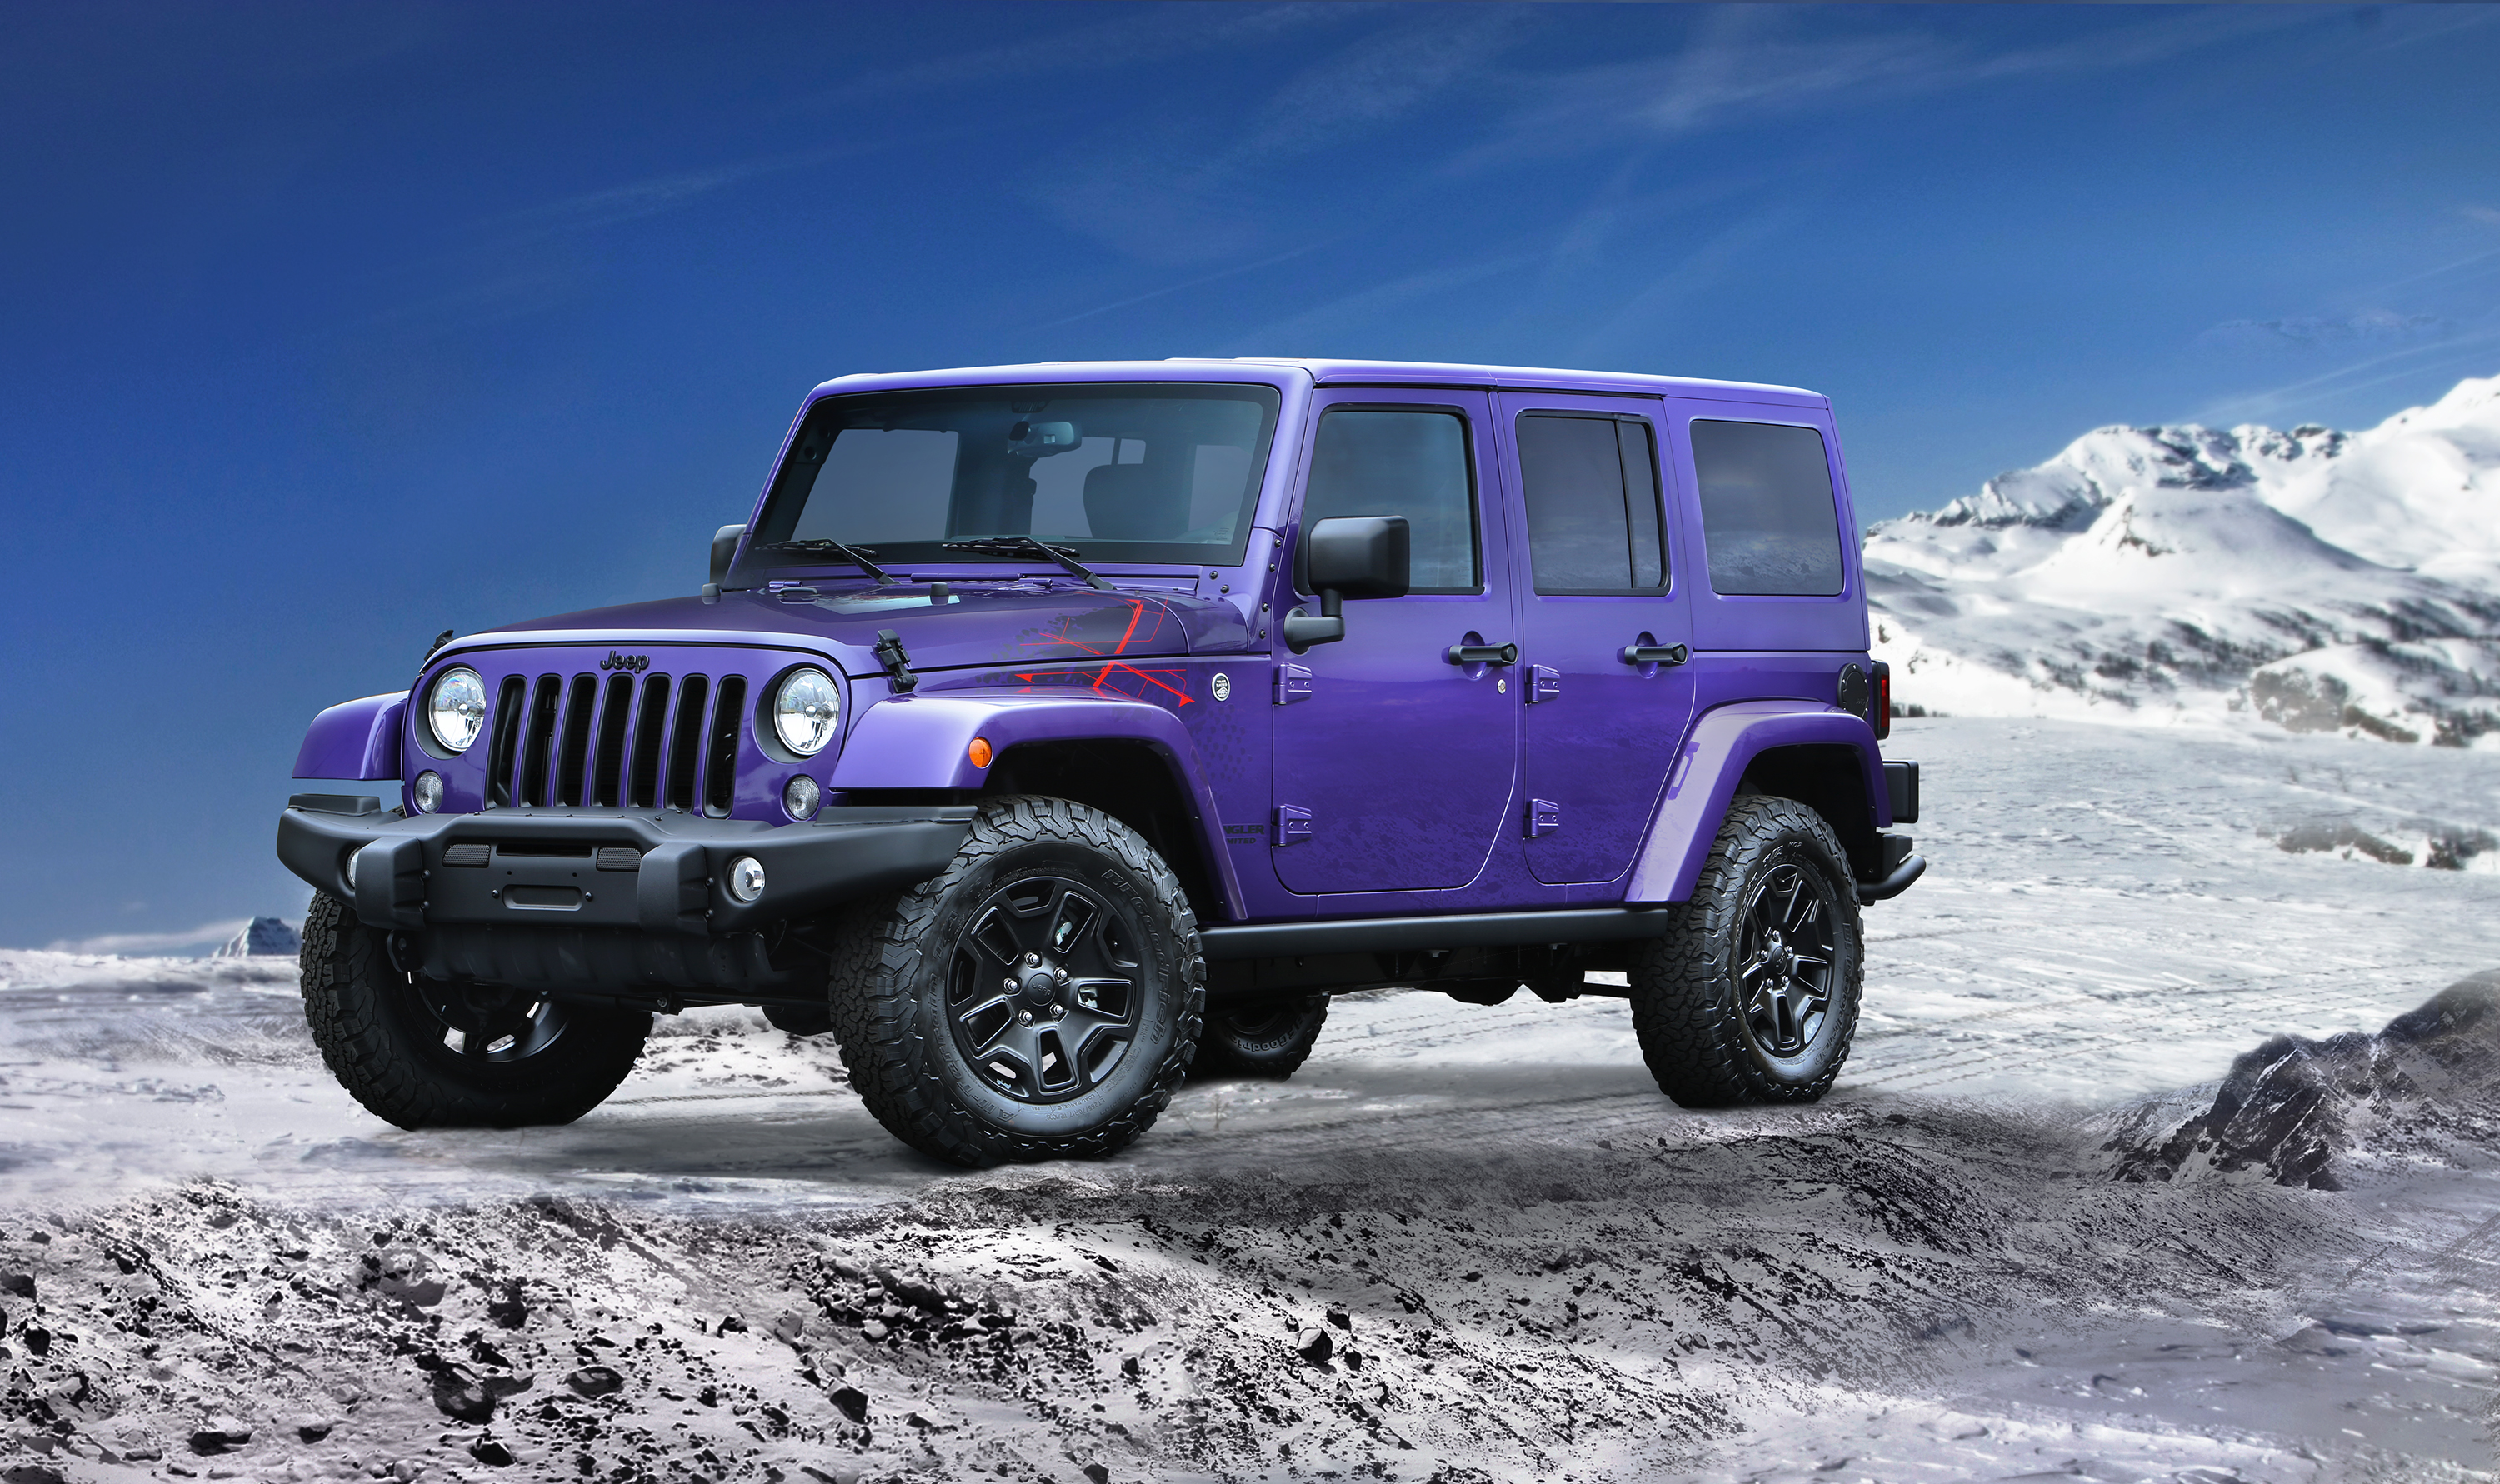 Next Gen Jeep Wrangler Will Have Sel Hybrid And Pickup Truck